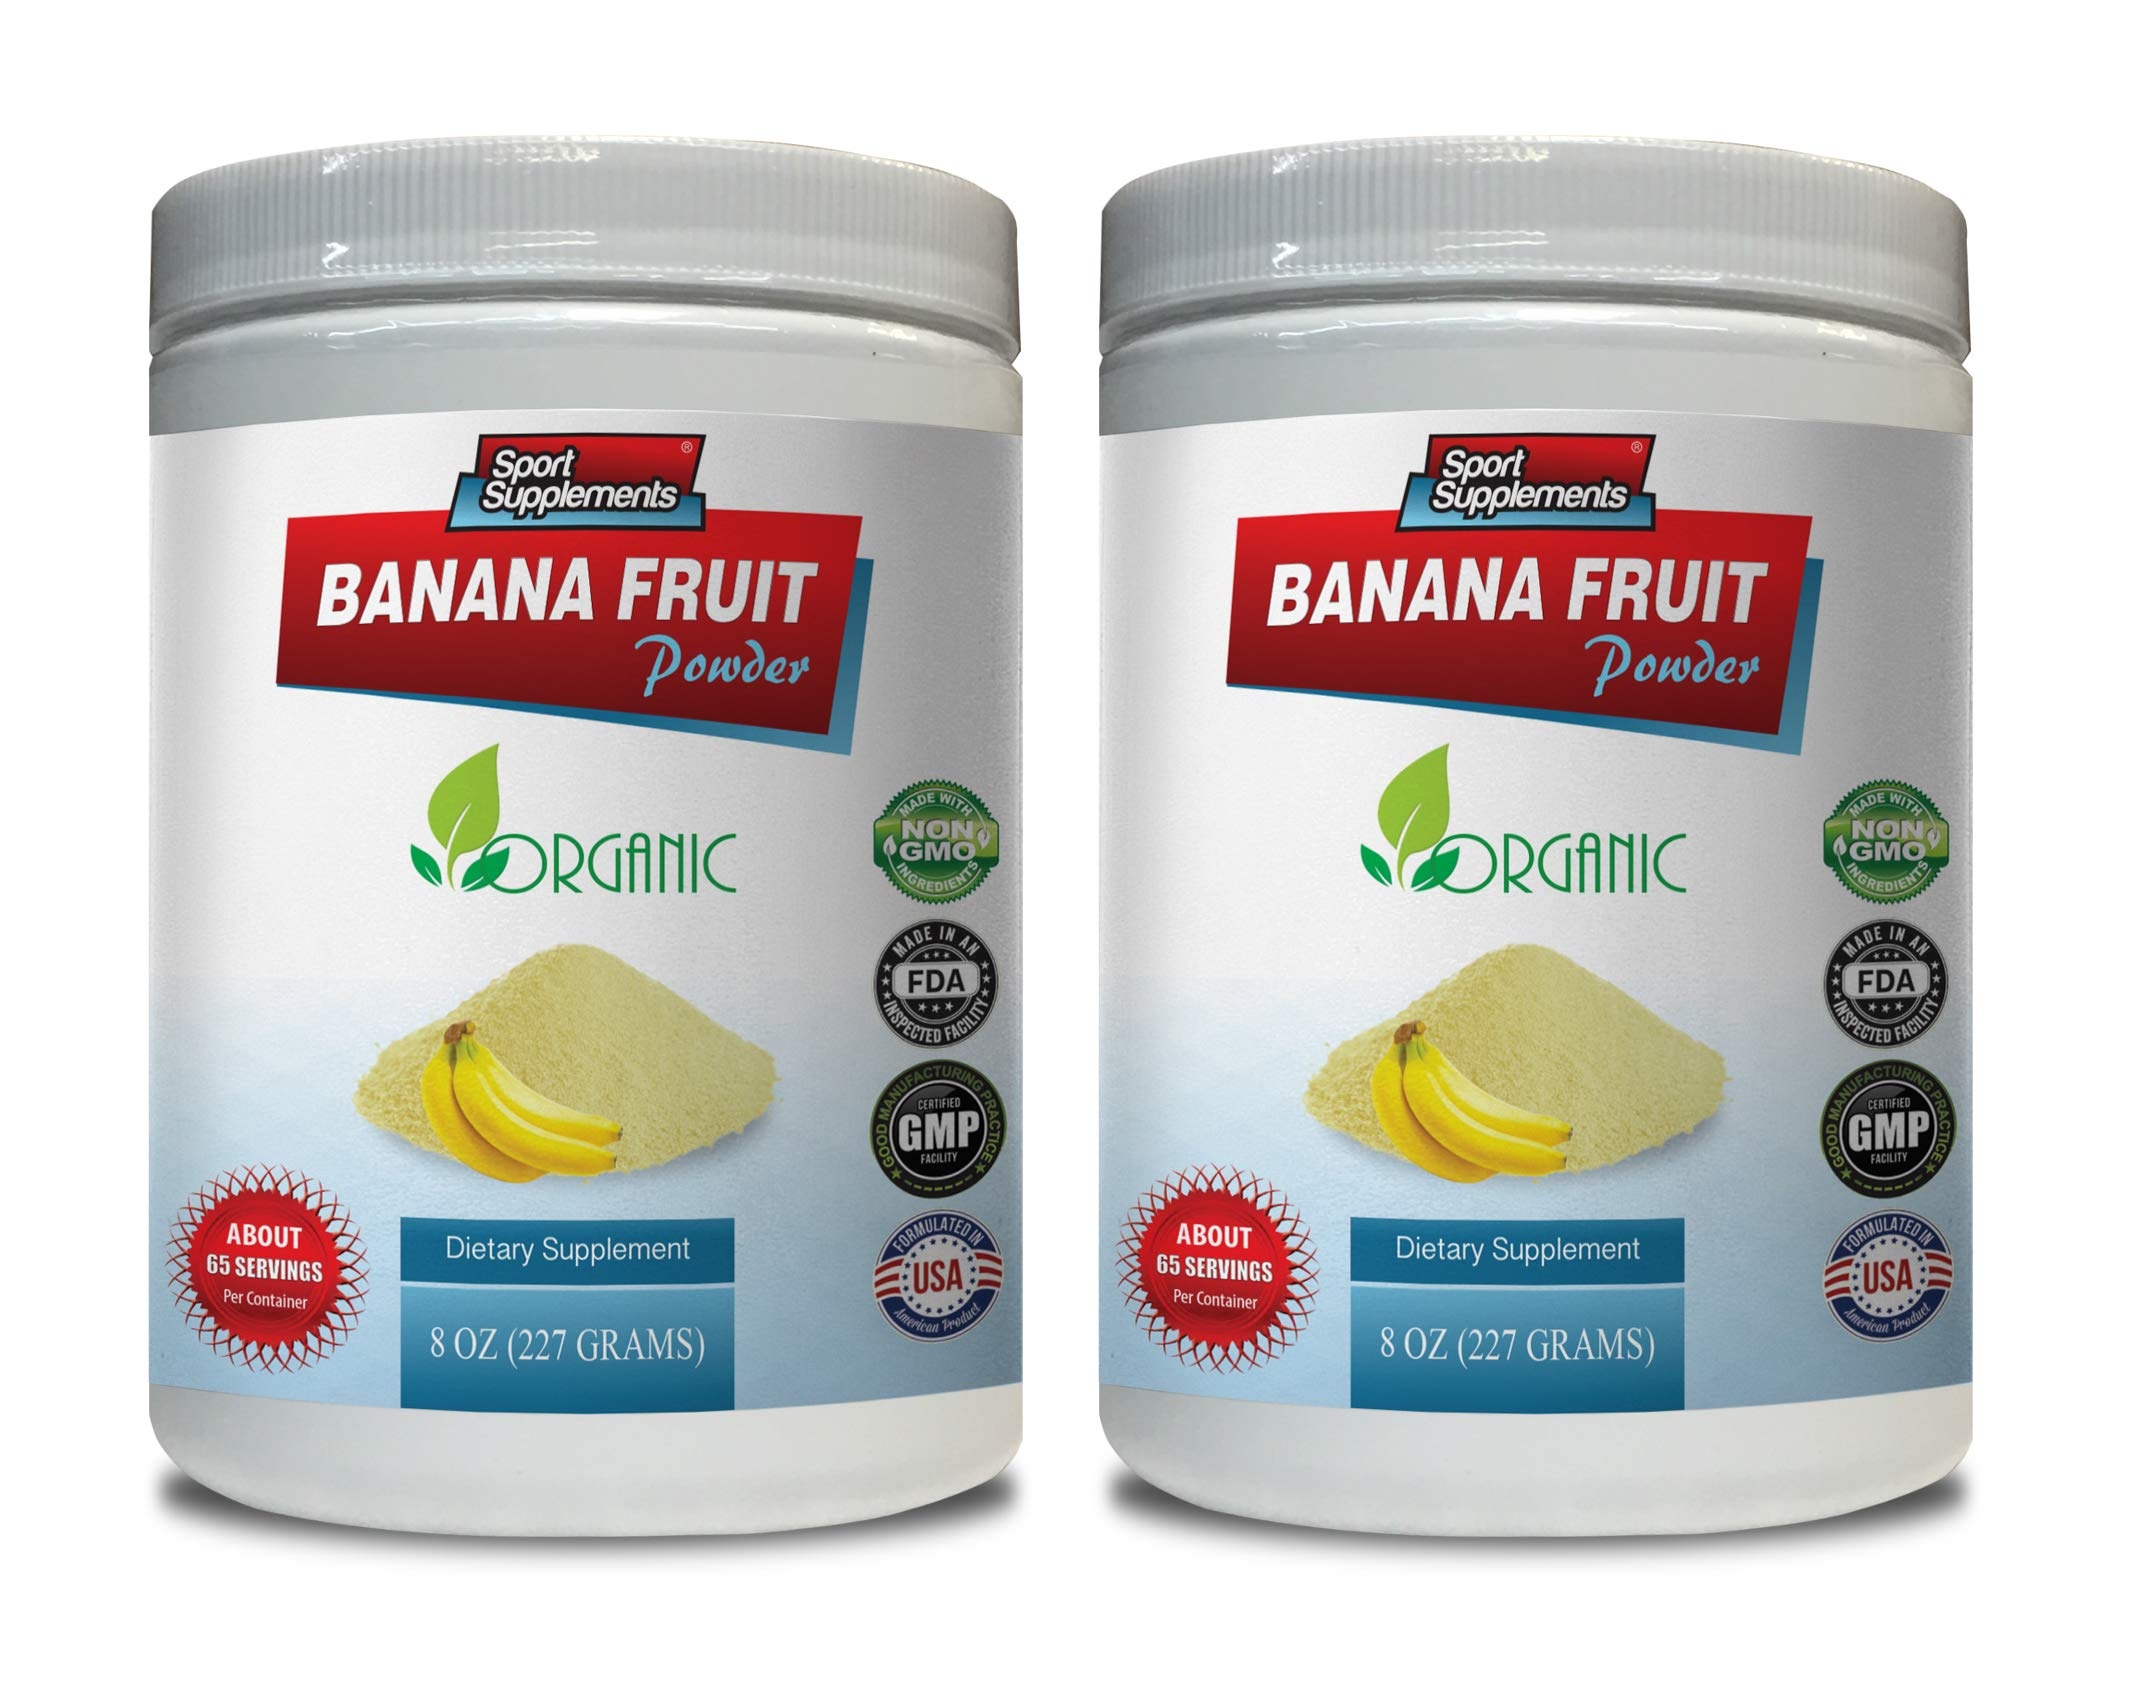 Energy boosters and Weight Loss Supplements - Banana Fruit Powder - Organic Dietary Supplement - Banana Fruit Powder - 2 Cans 16 OZ (130 Servings)